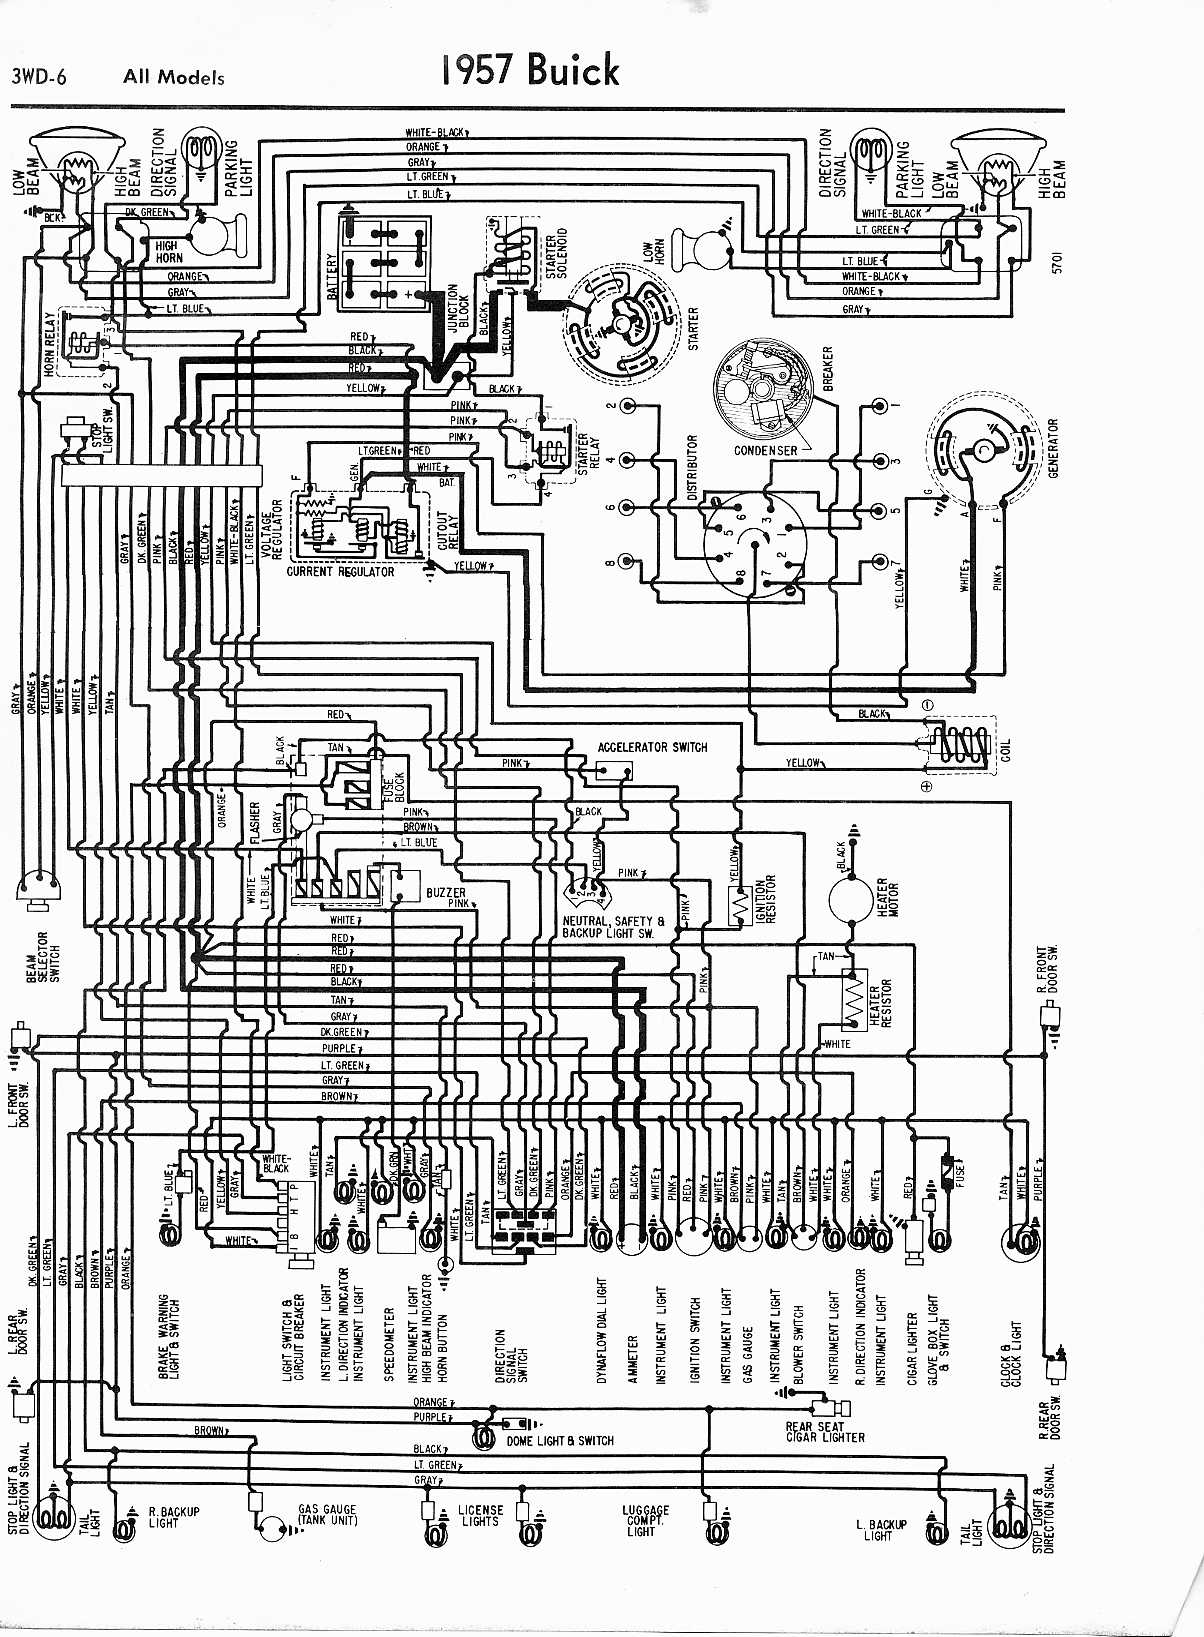 1957 Buick Wiring Harness Schematics Diagrams 1958 Corvette Instrument Cluster Diagram 1965 Rh Oldcarmanualproject Com 1955